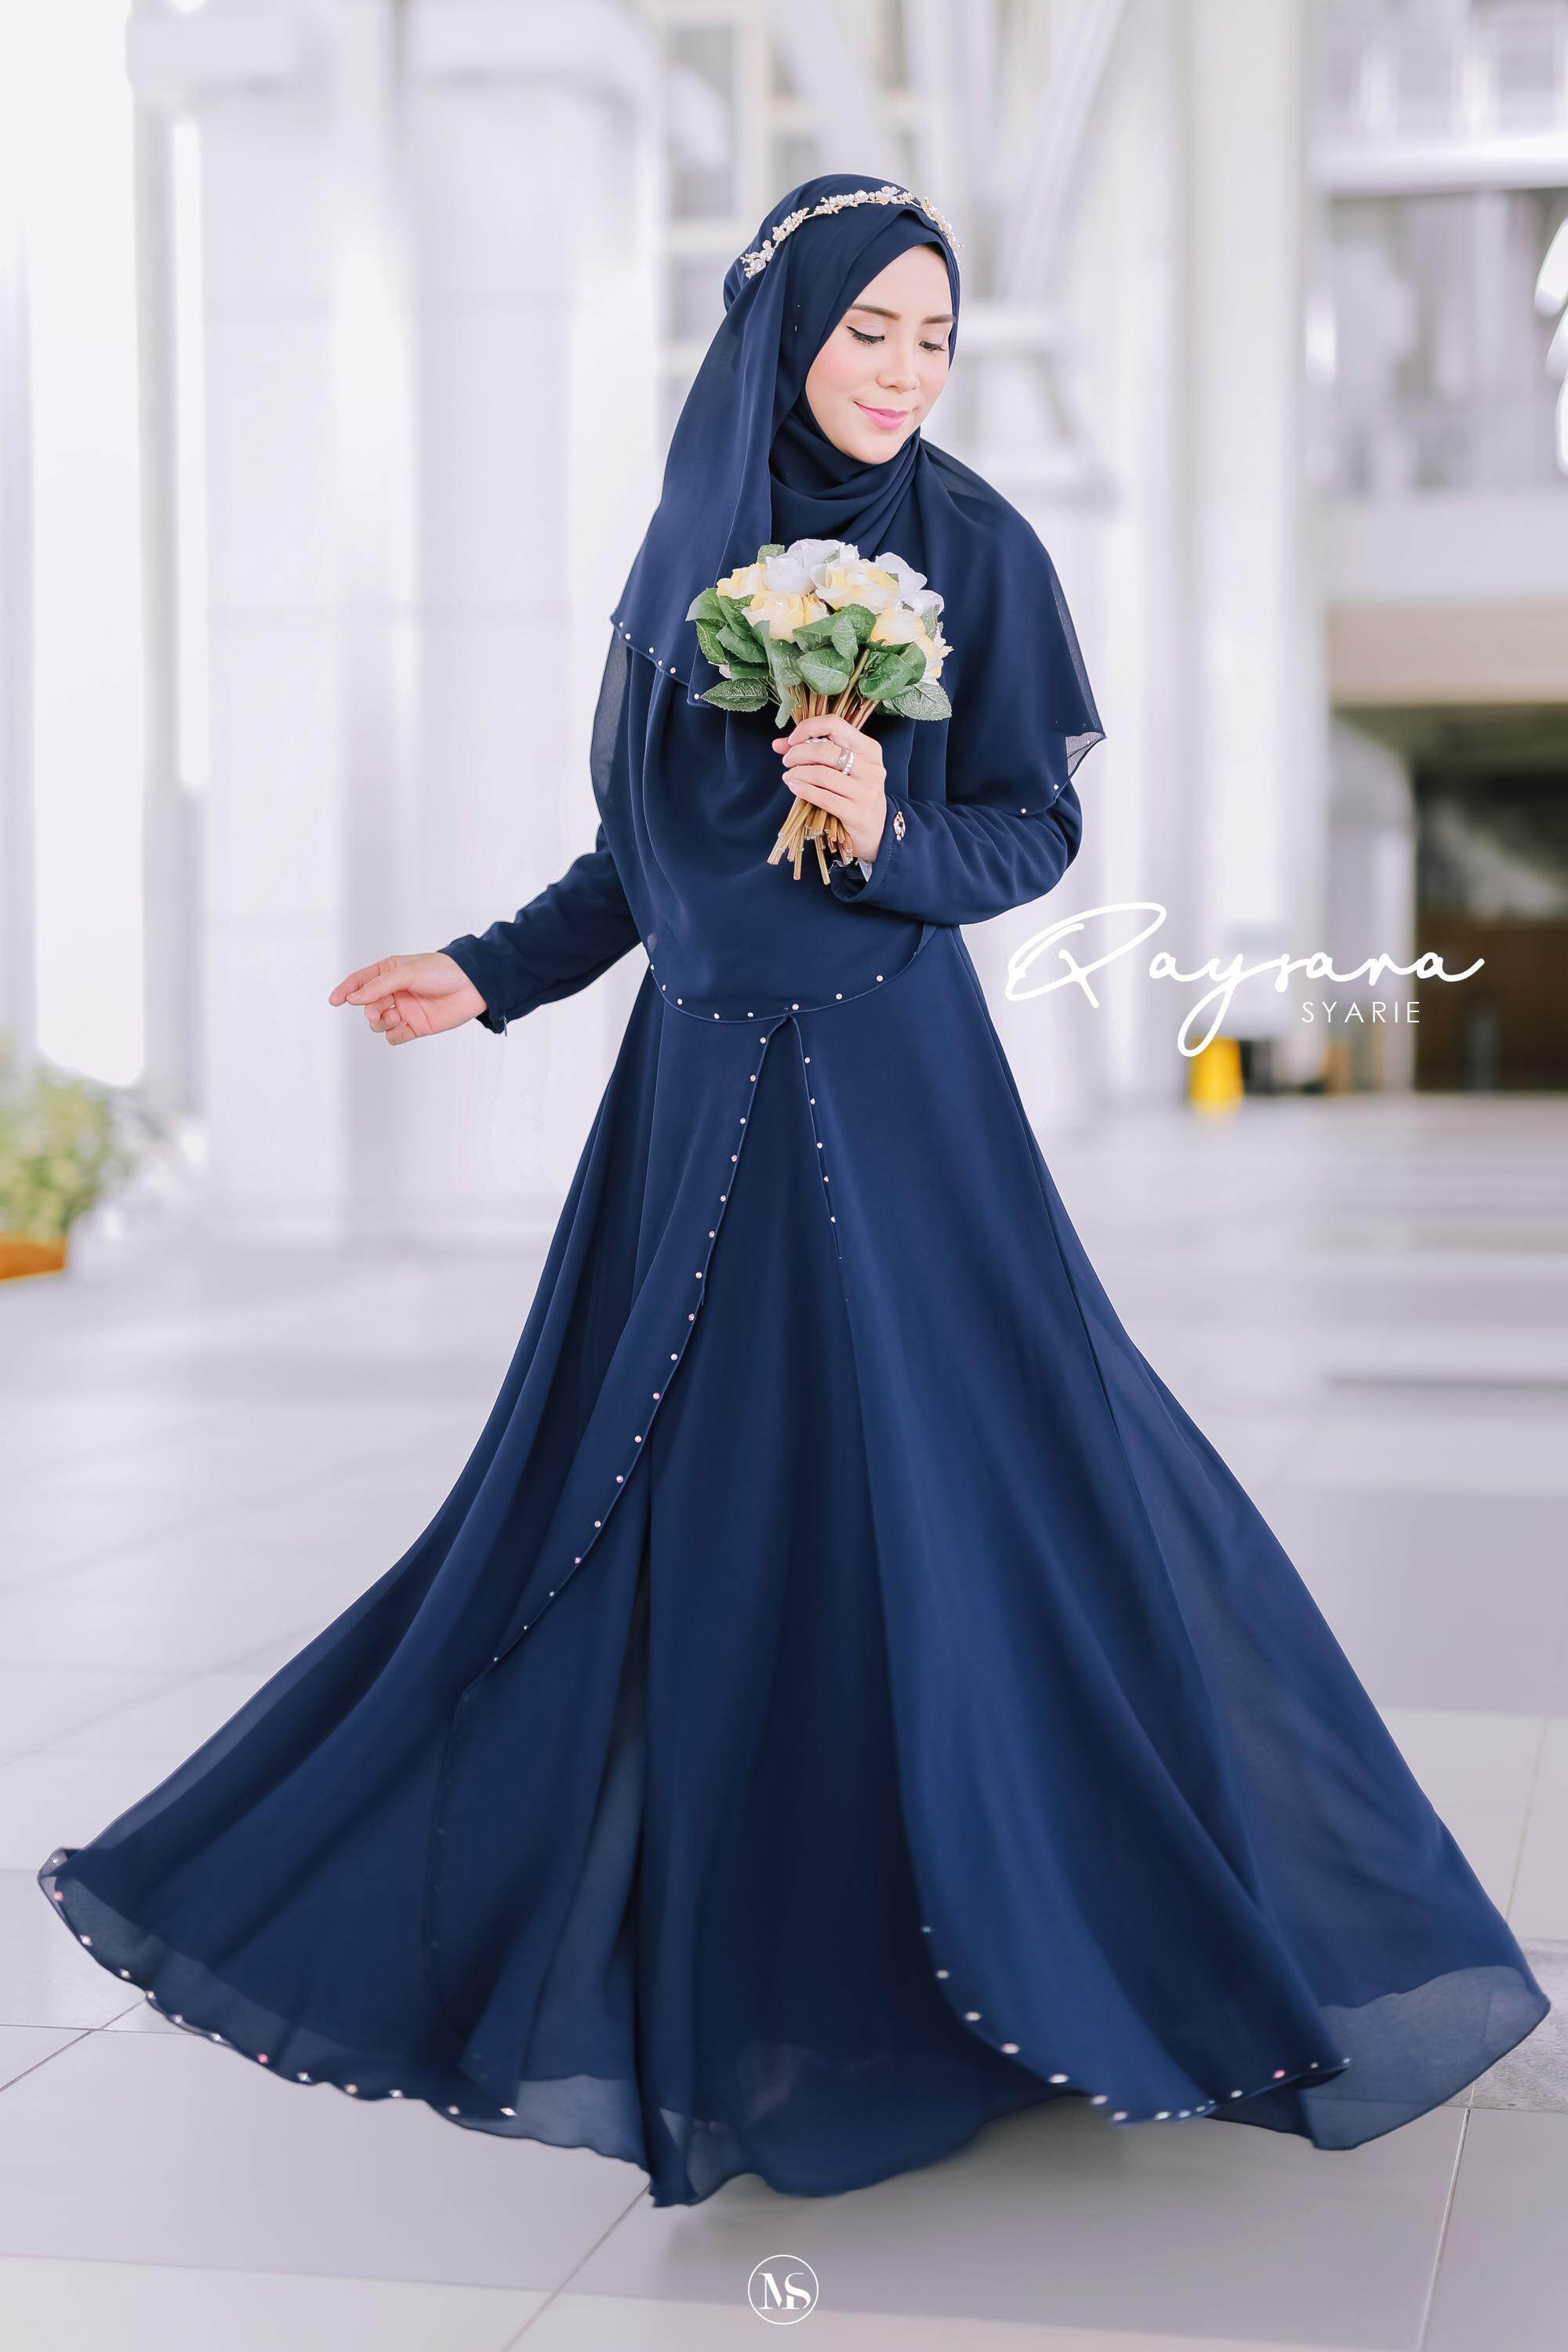 QAYSARA JUBAH TUNANG KAHWIN BAJU RAYA BRIDESMAID BAJU LABUH free tudung 122,  122 set pakaian Pengantin, BATU SWROVSKI , bridesmaid, maid in honour- others